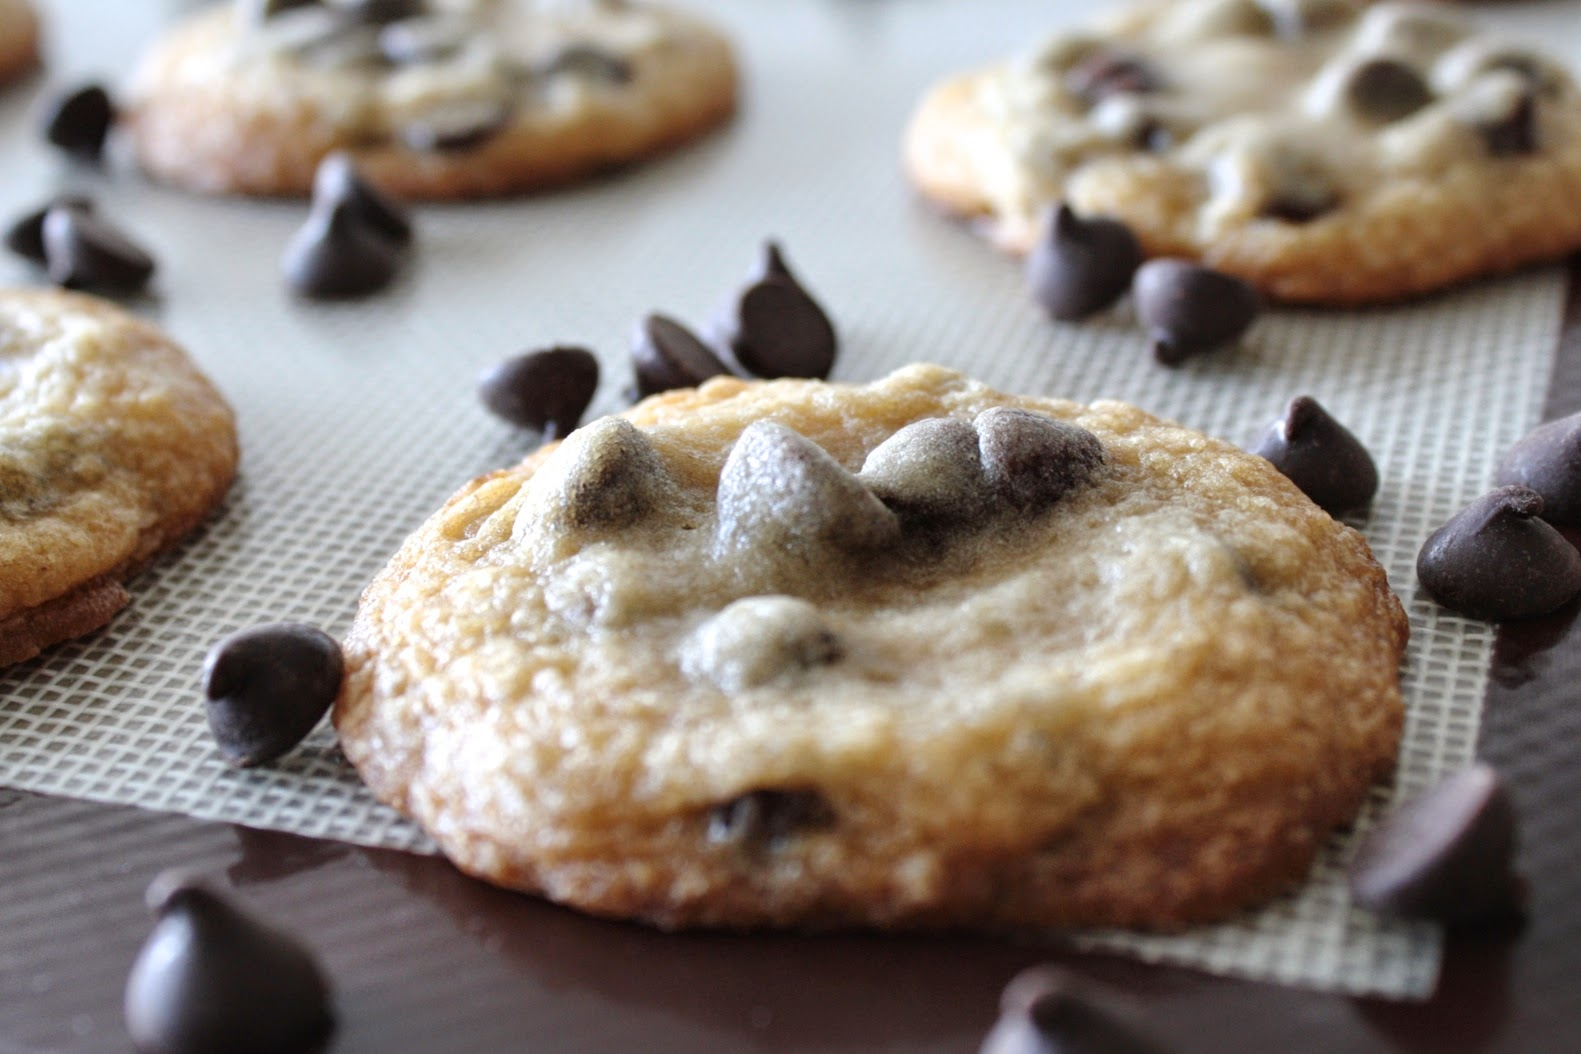 A close up of a cookie